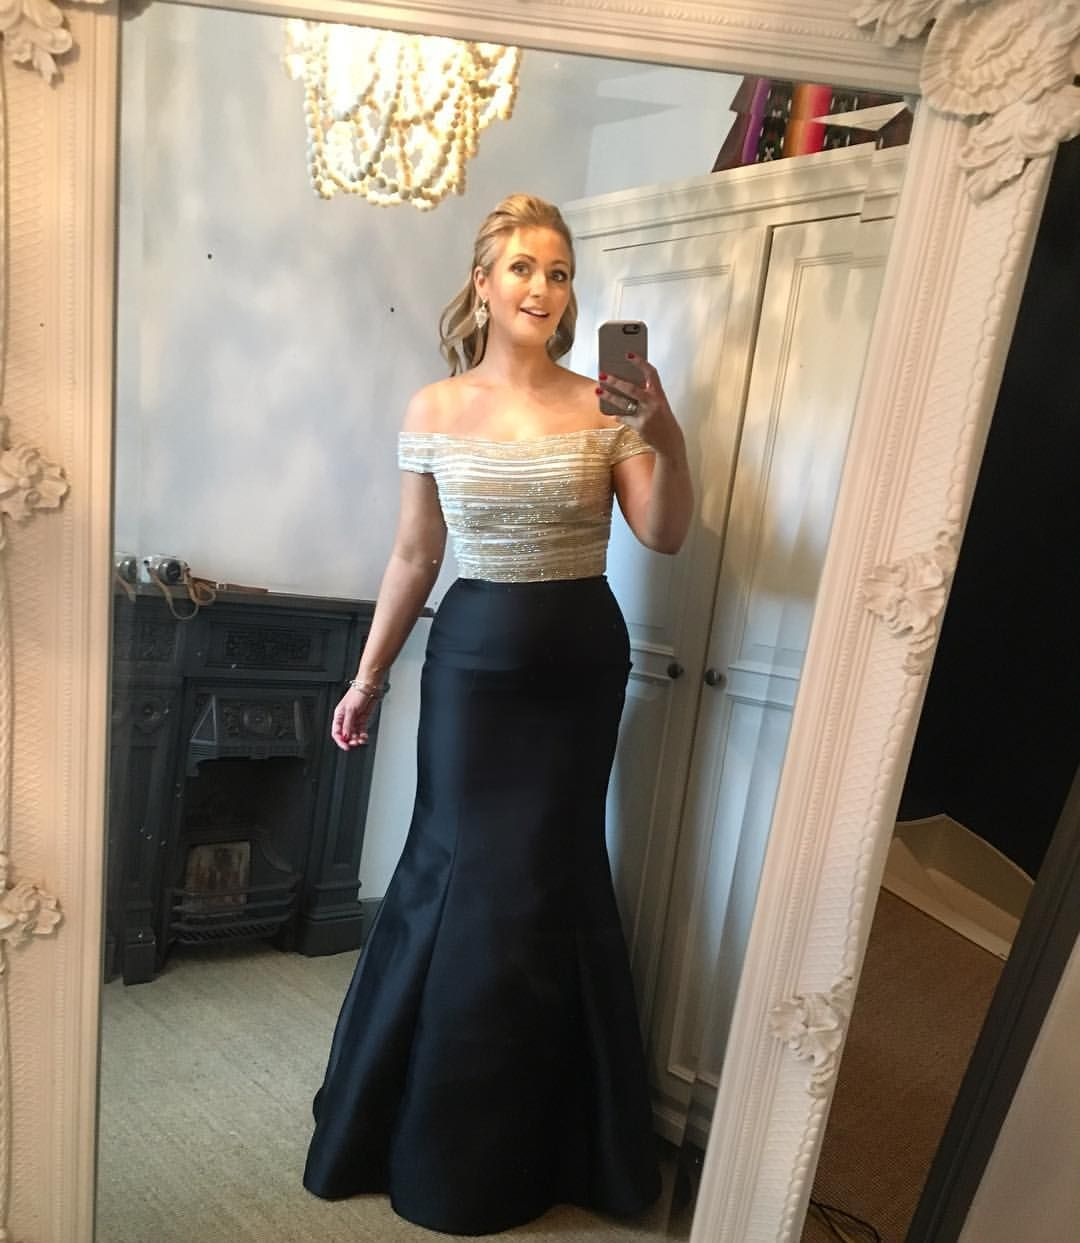 Paparazzi Hayley McQueen nude (87 photos), Sexy, Fappening, Feet, braless 2015